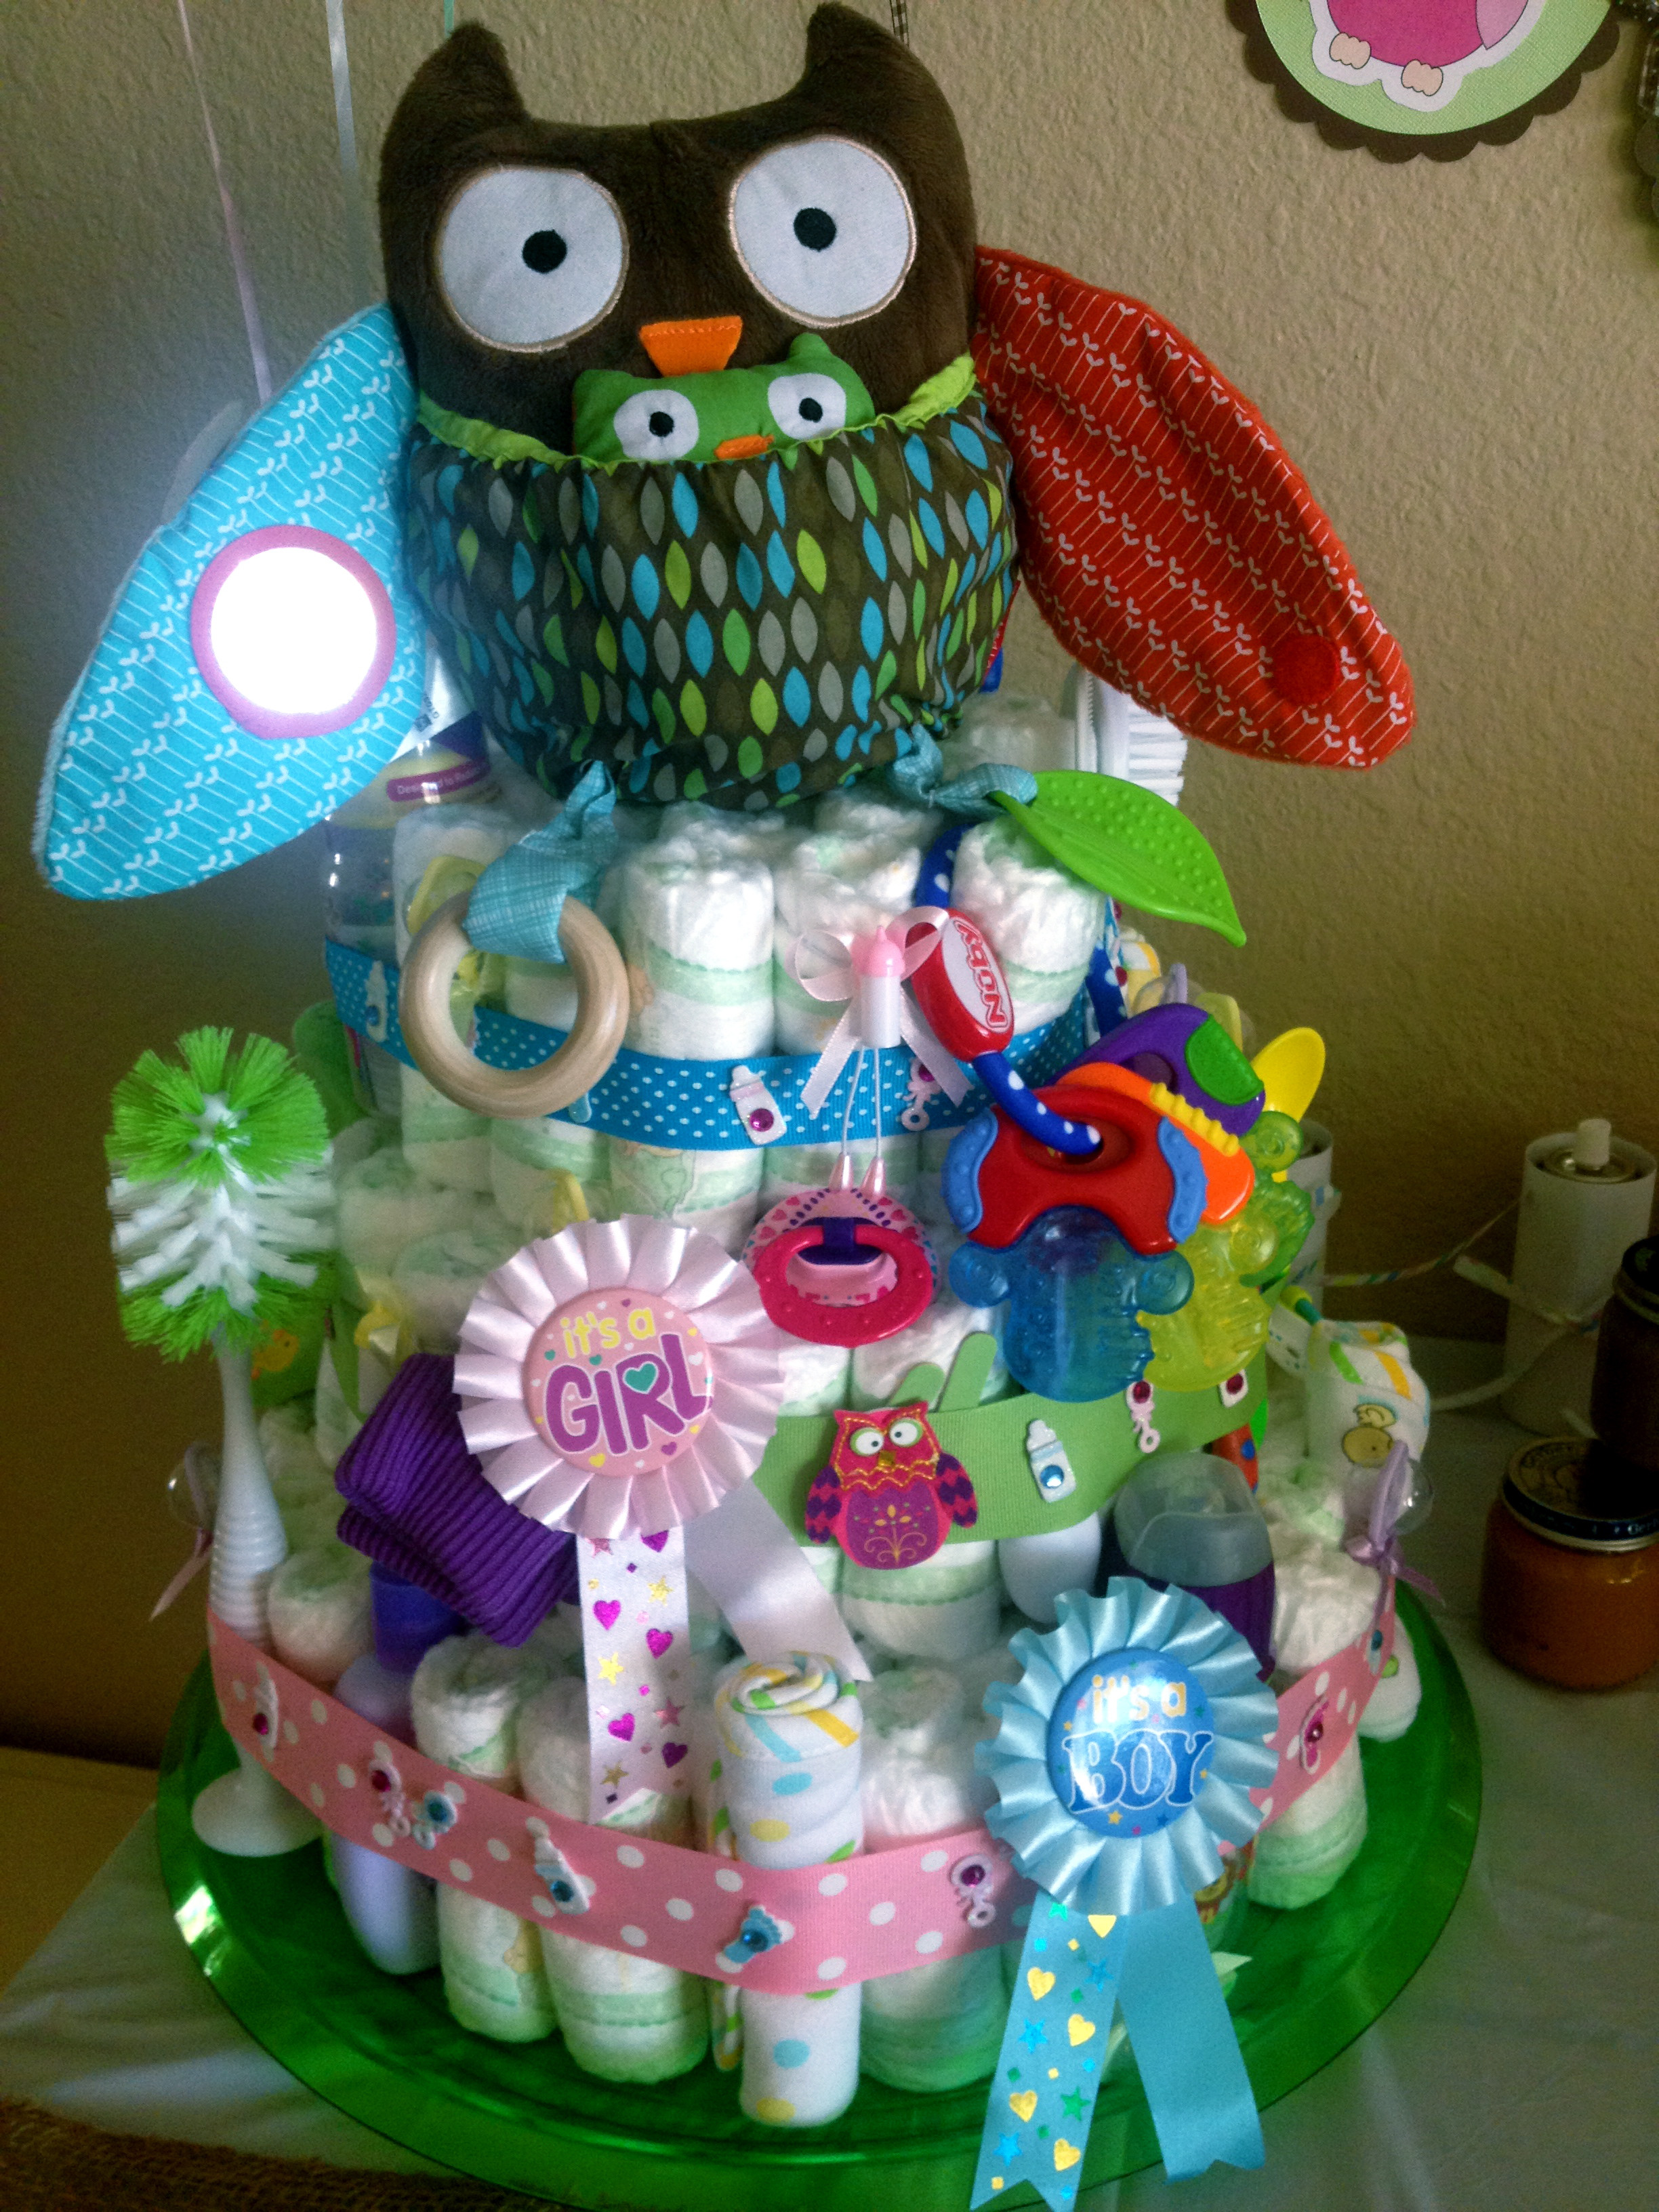 Best ideas about Baby Reveal Gift Ideas . Save or Pin Gender Reveal Baby Shower Now.